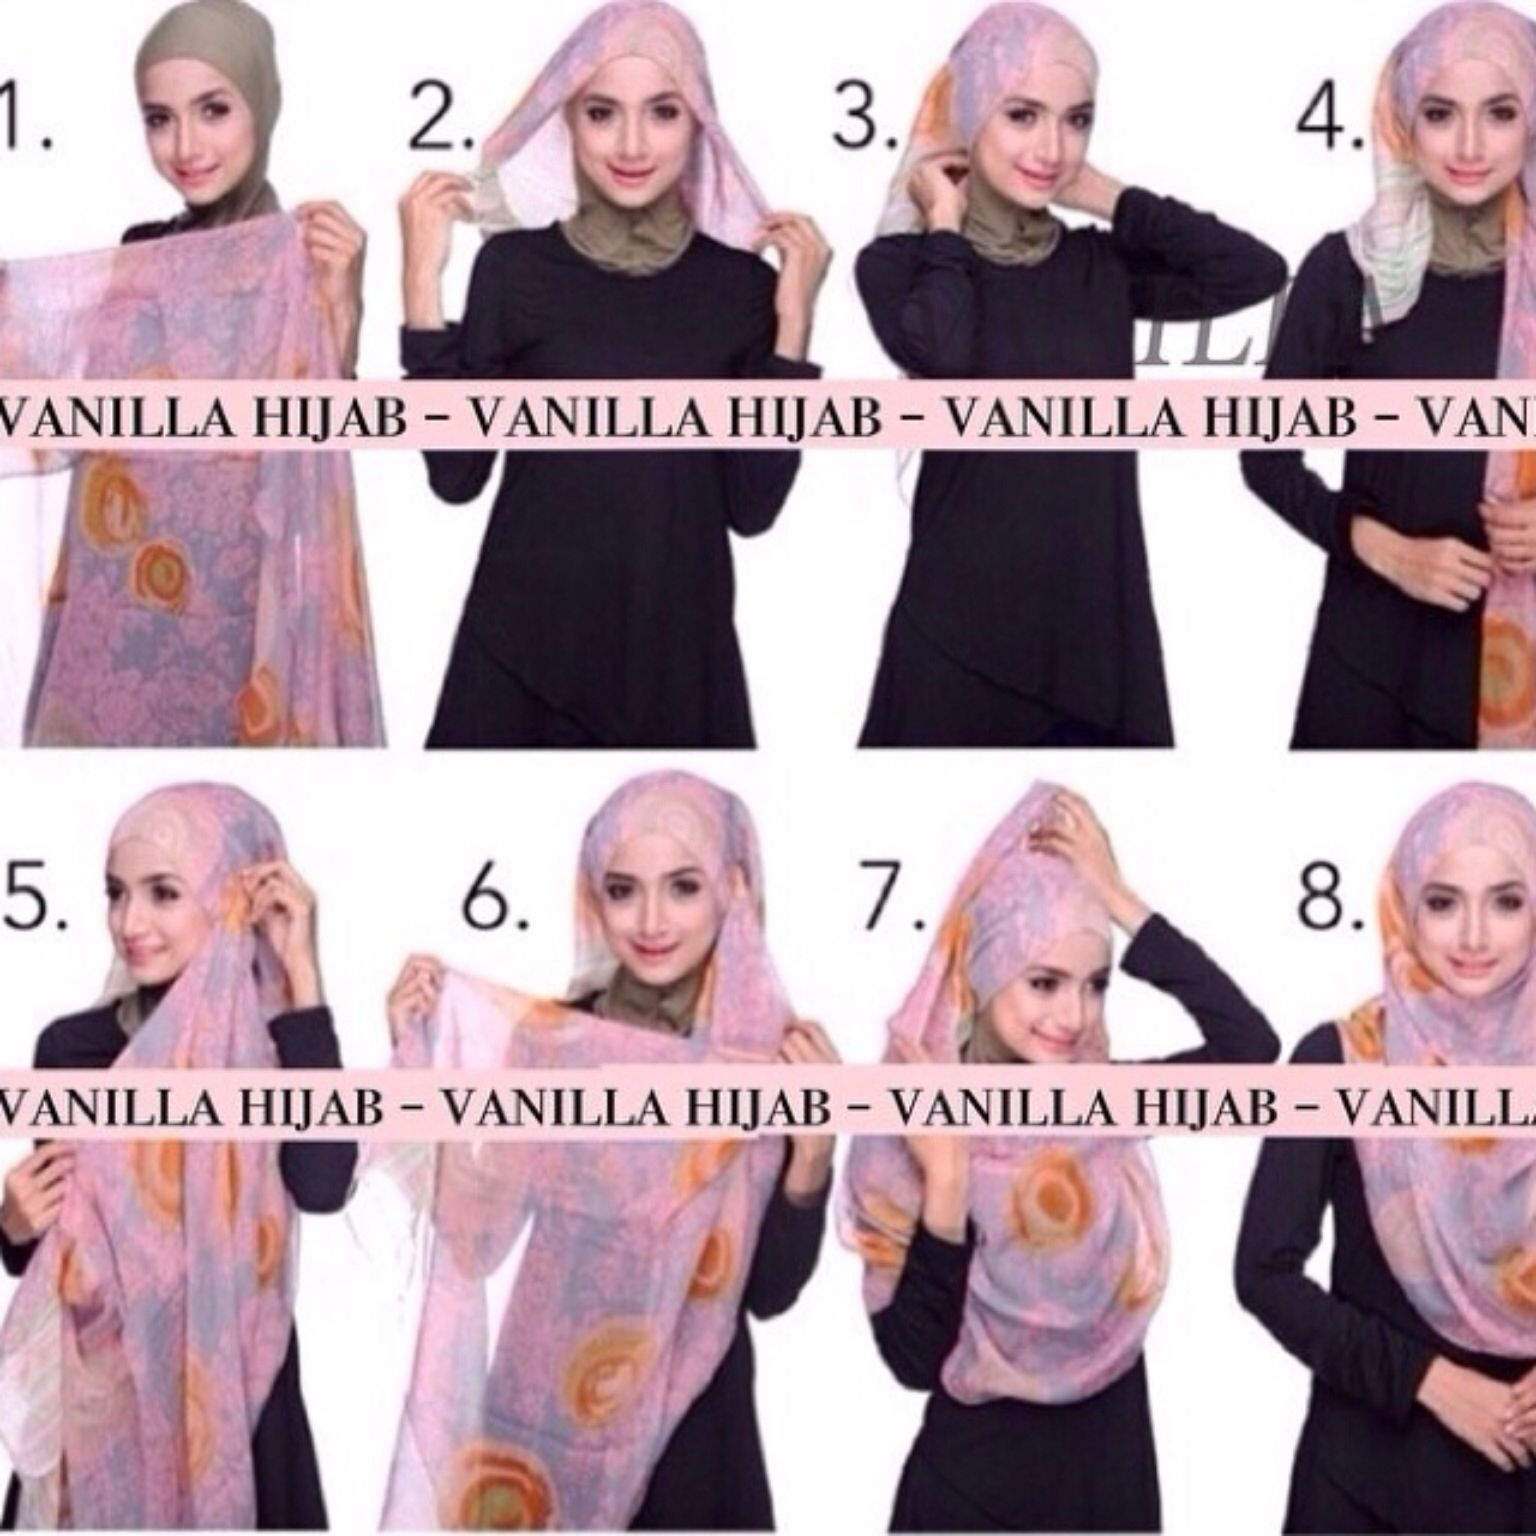 Tutorial Vanilla Hijab Hijab Fashion Pinterest Hijabs